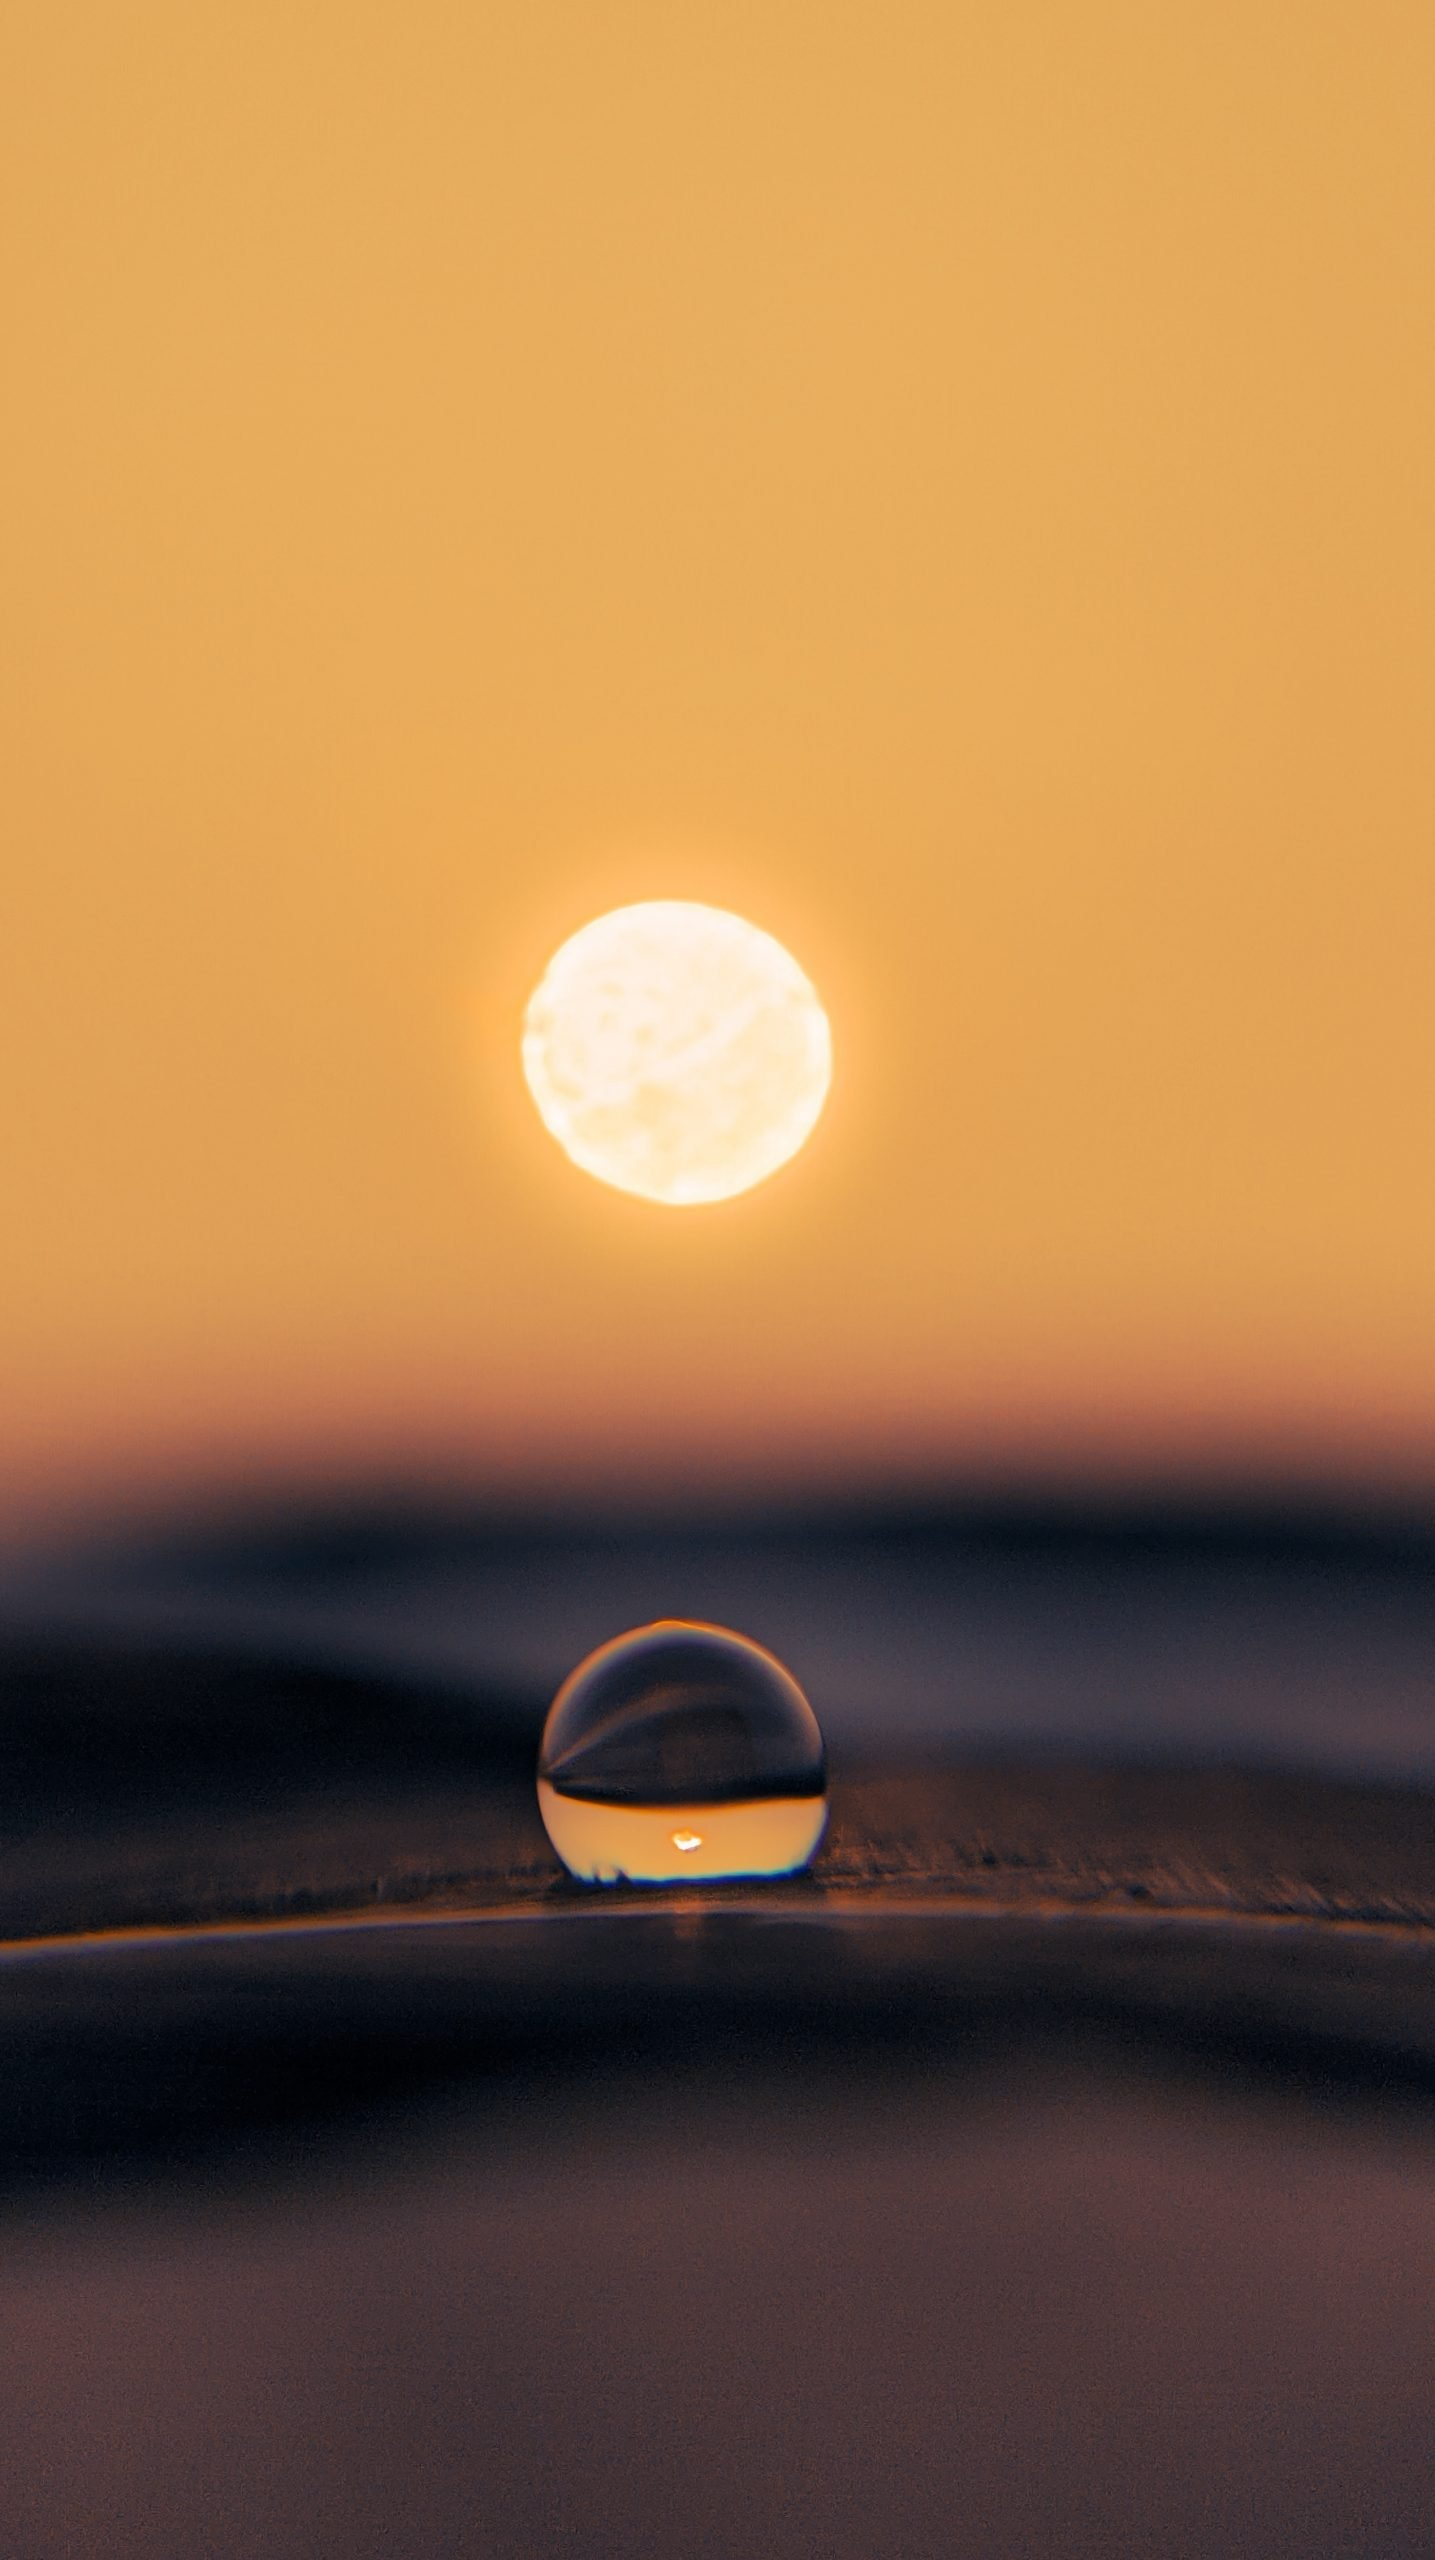 A water drop and sun